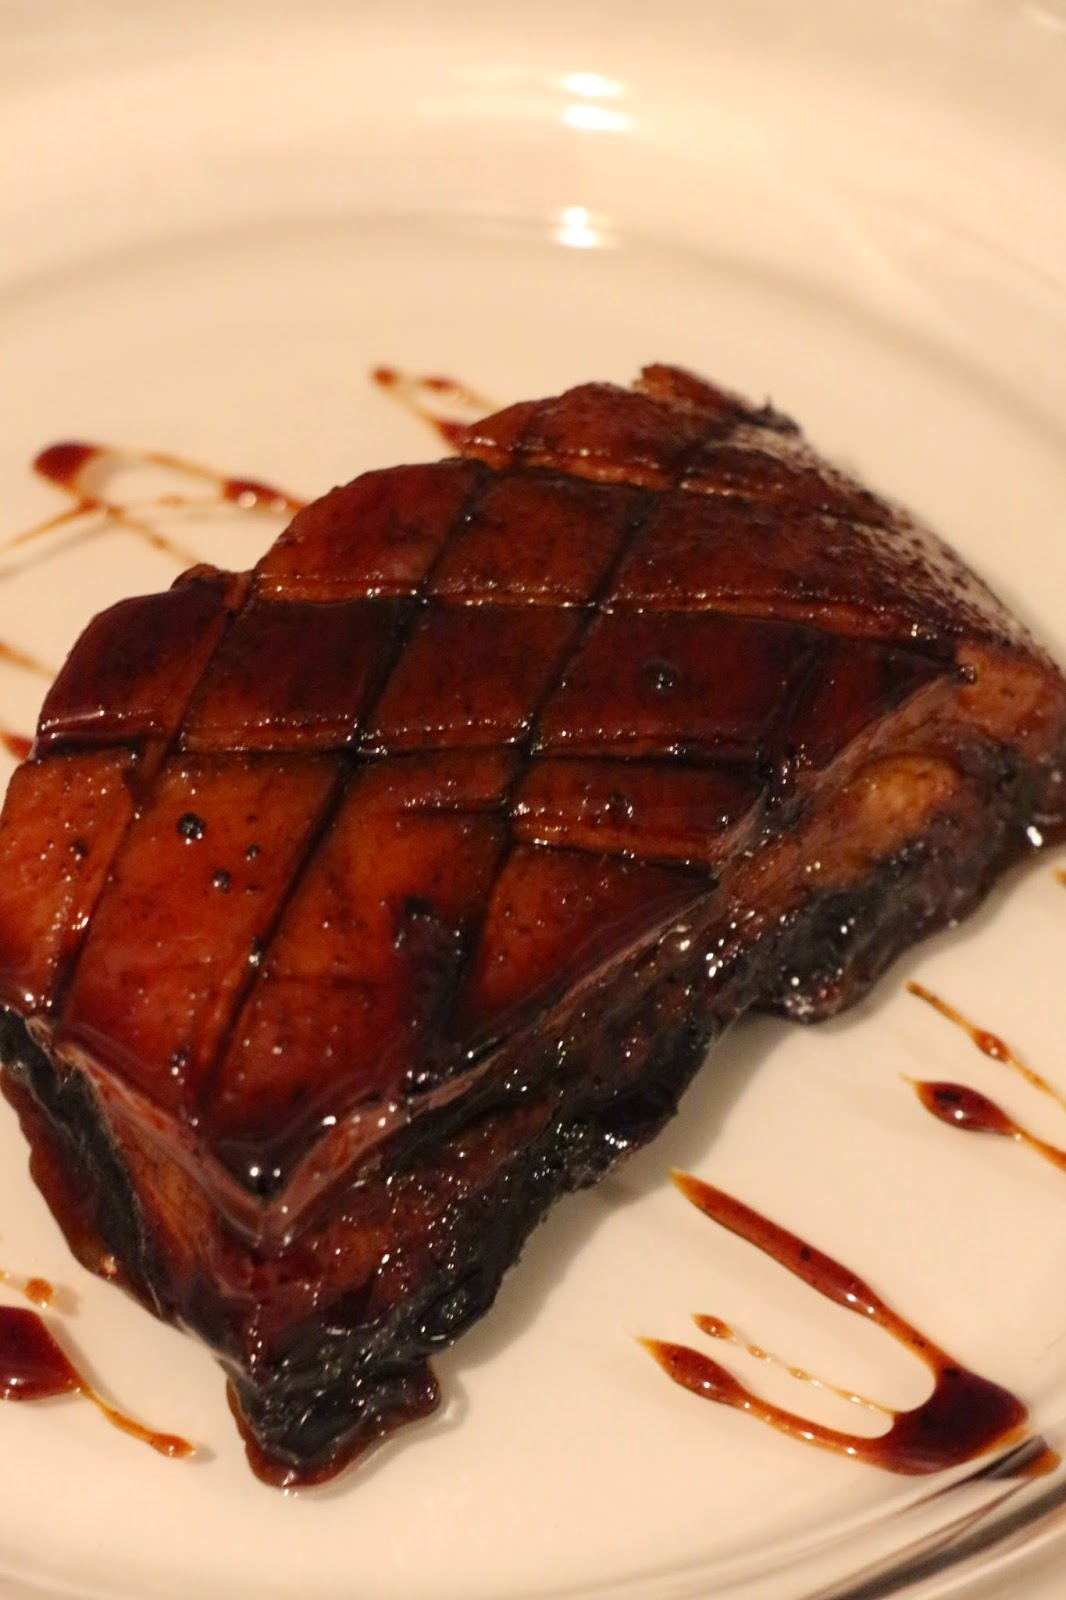 SWEET STICKY SOY AND GINGER SLOW BRAISED PORK BELLY